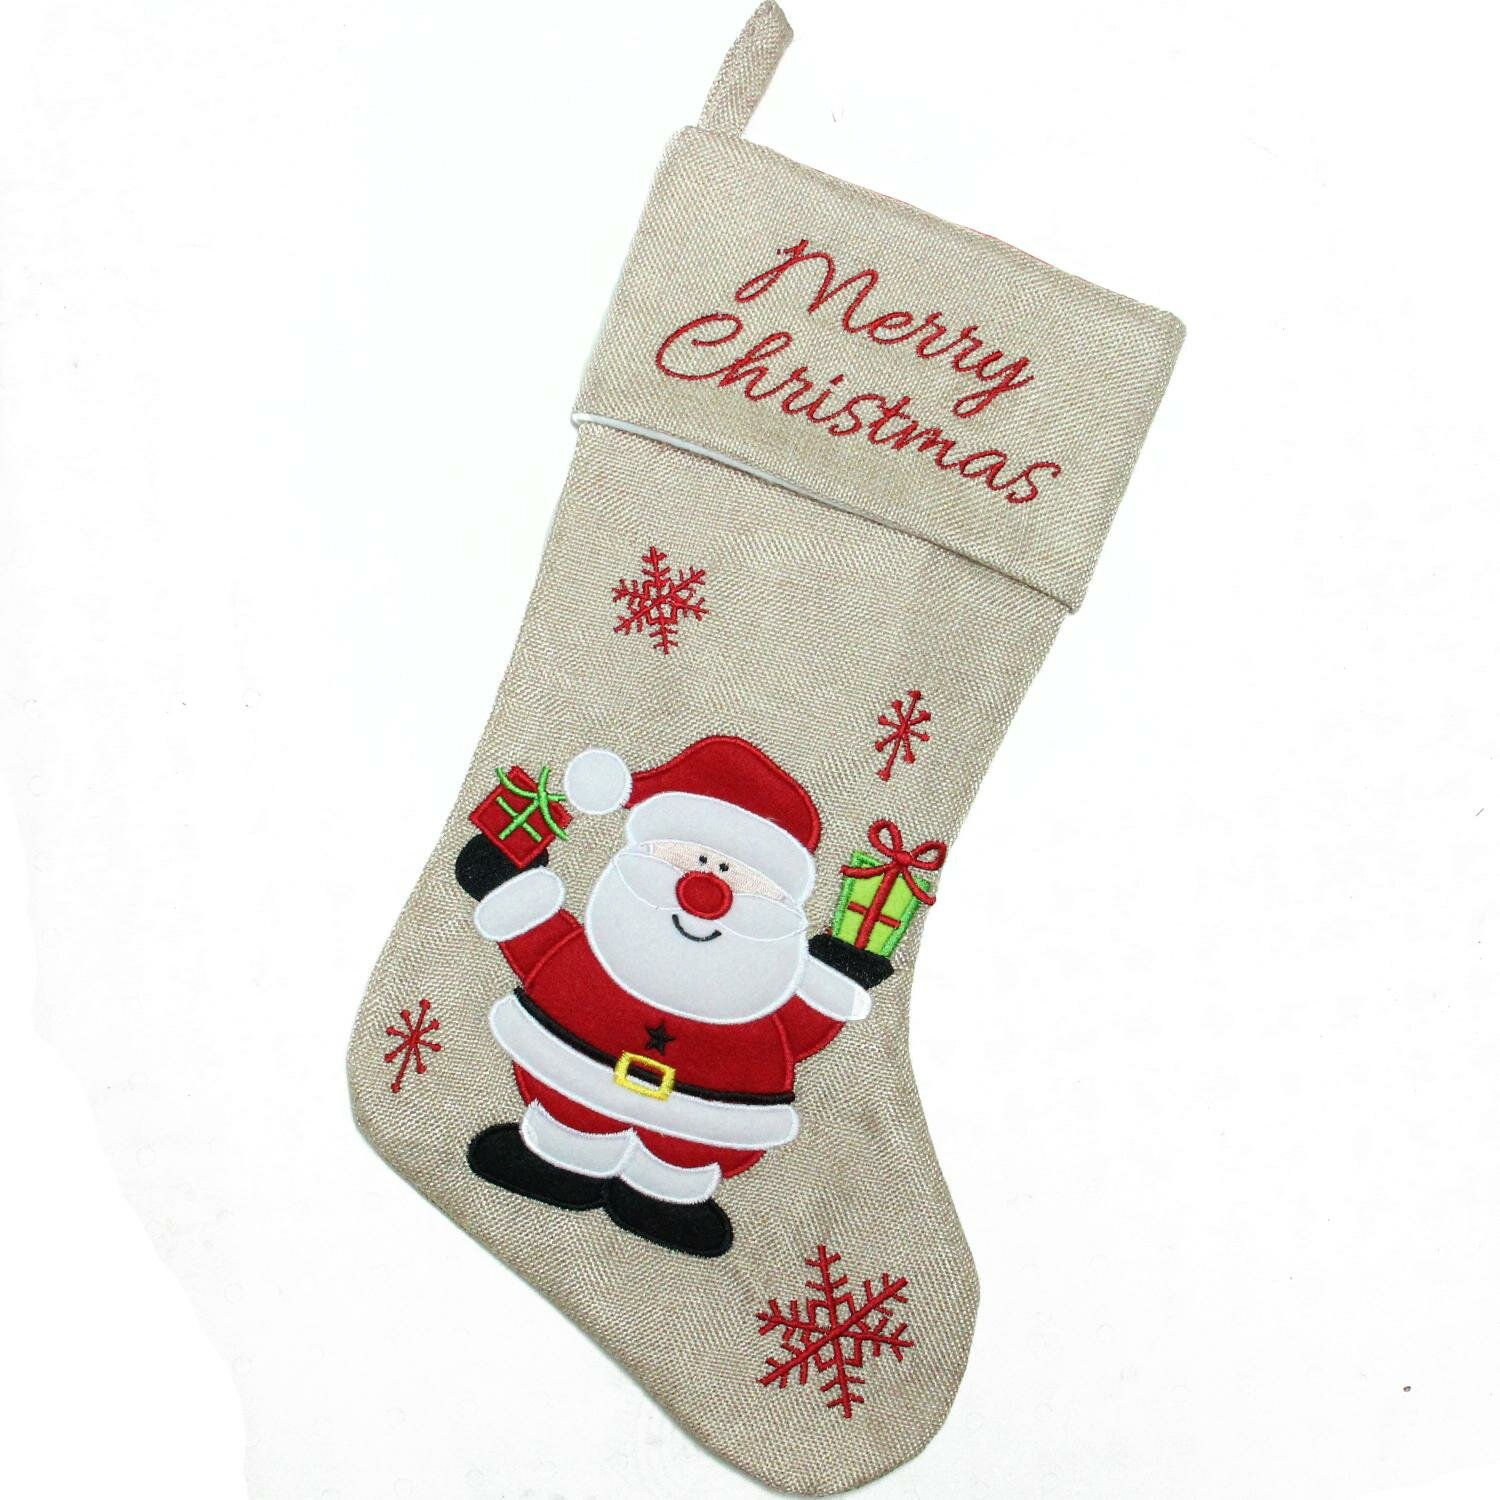 the holiday aisle burlap merry christmas santa claus embroidered christmas stocking wayfair